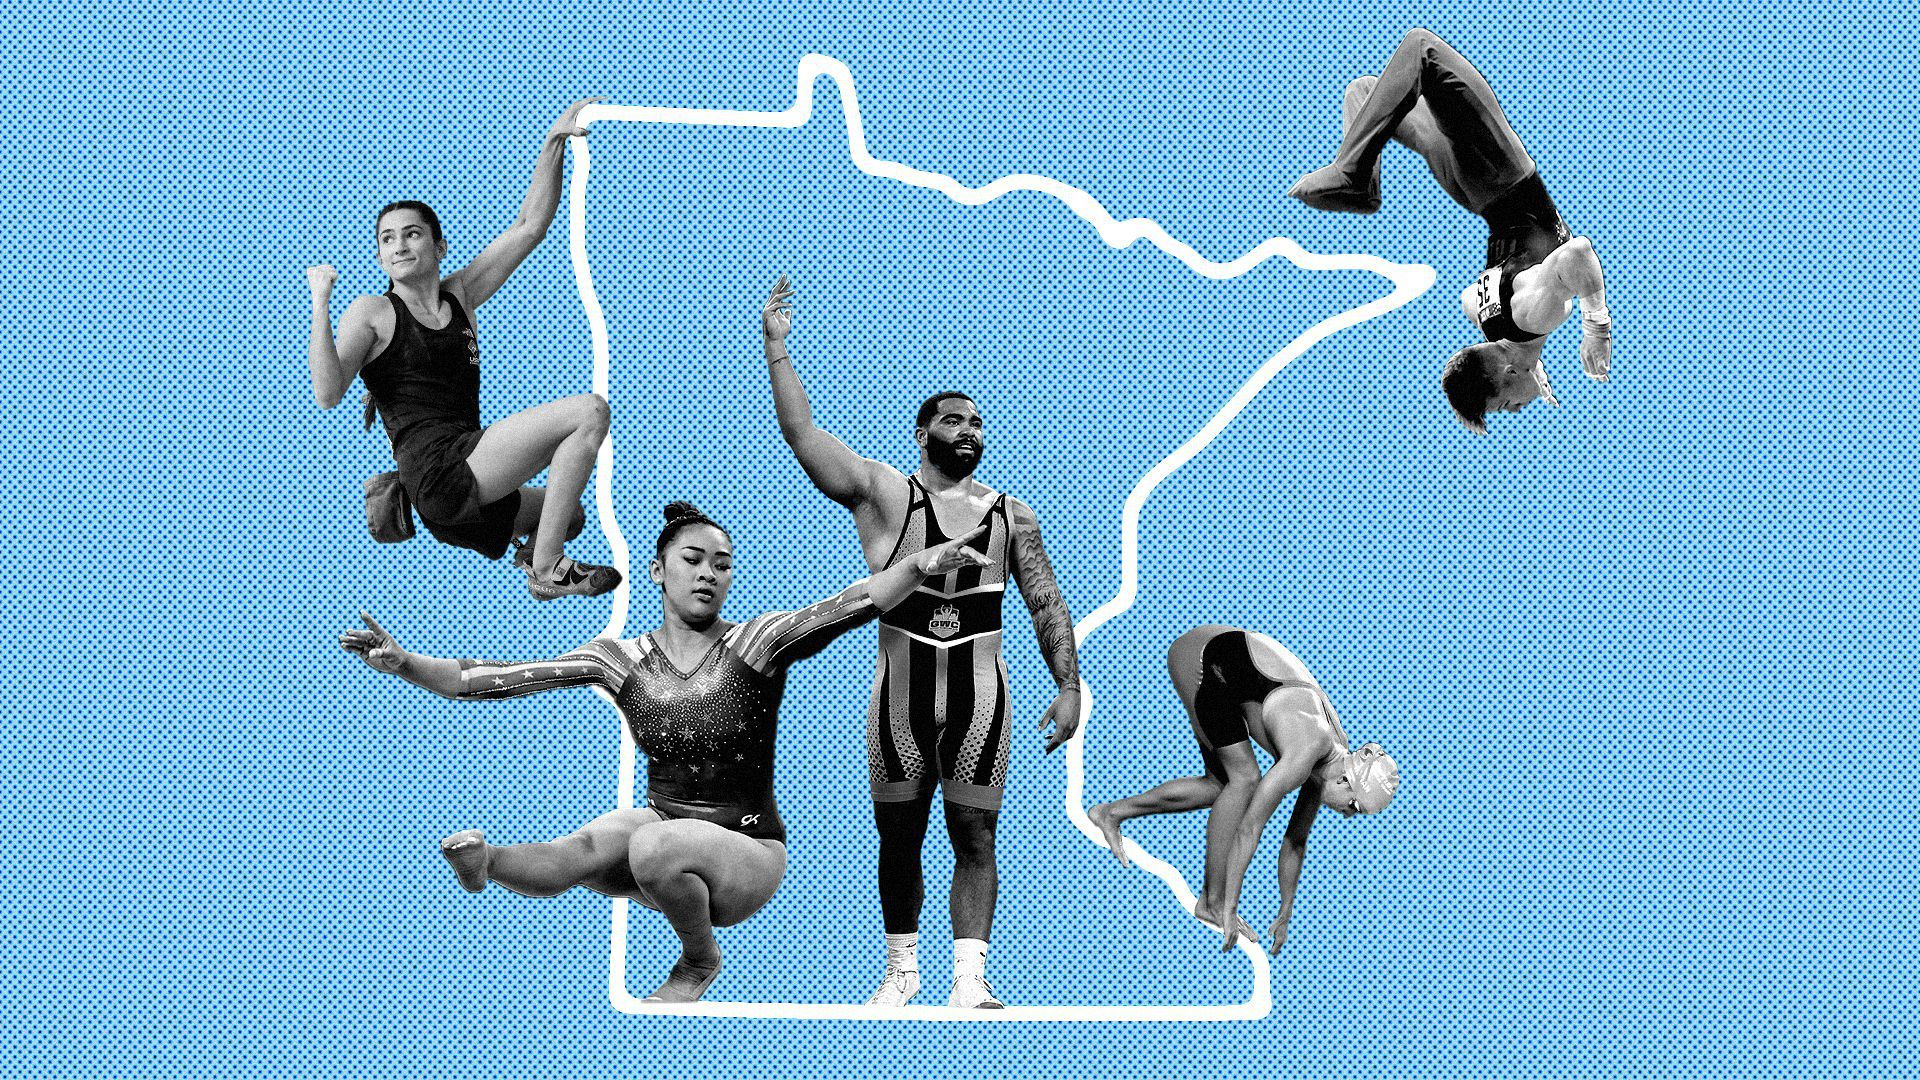 Photo illustration of numerous Olympic athletes from Minnesota set against the state's shape